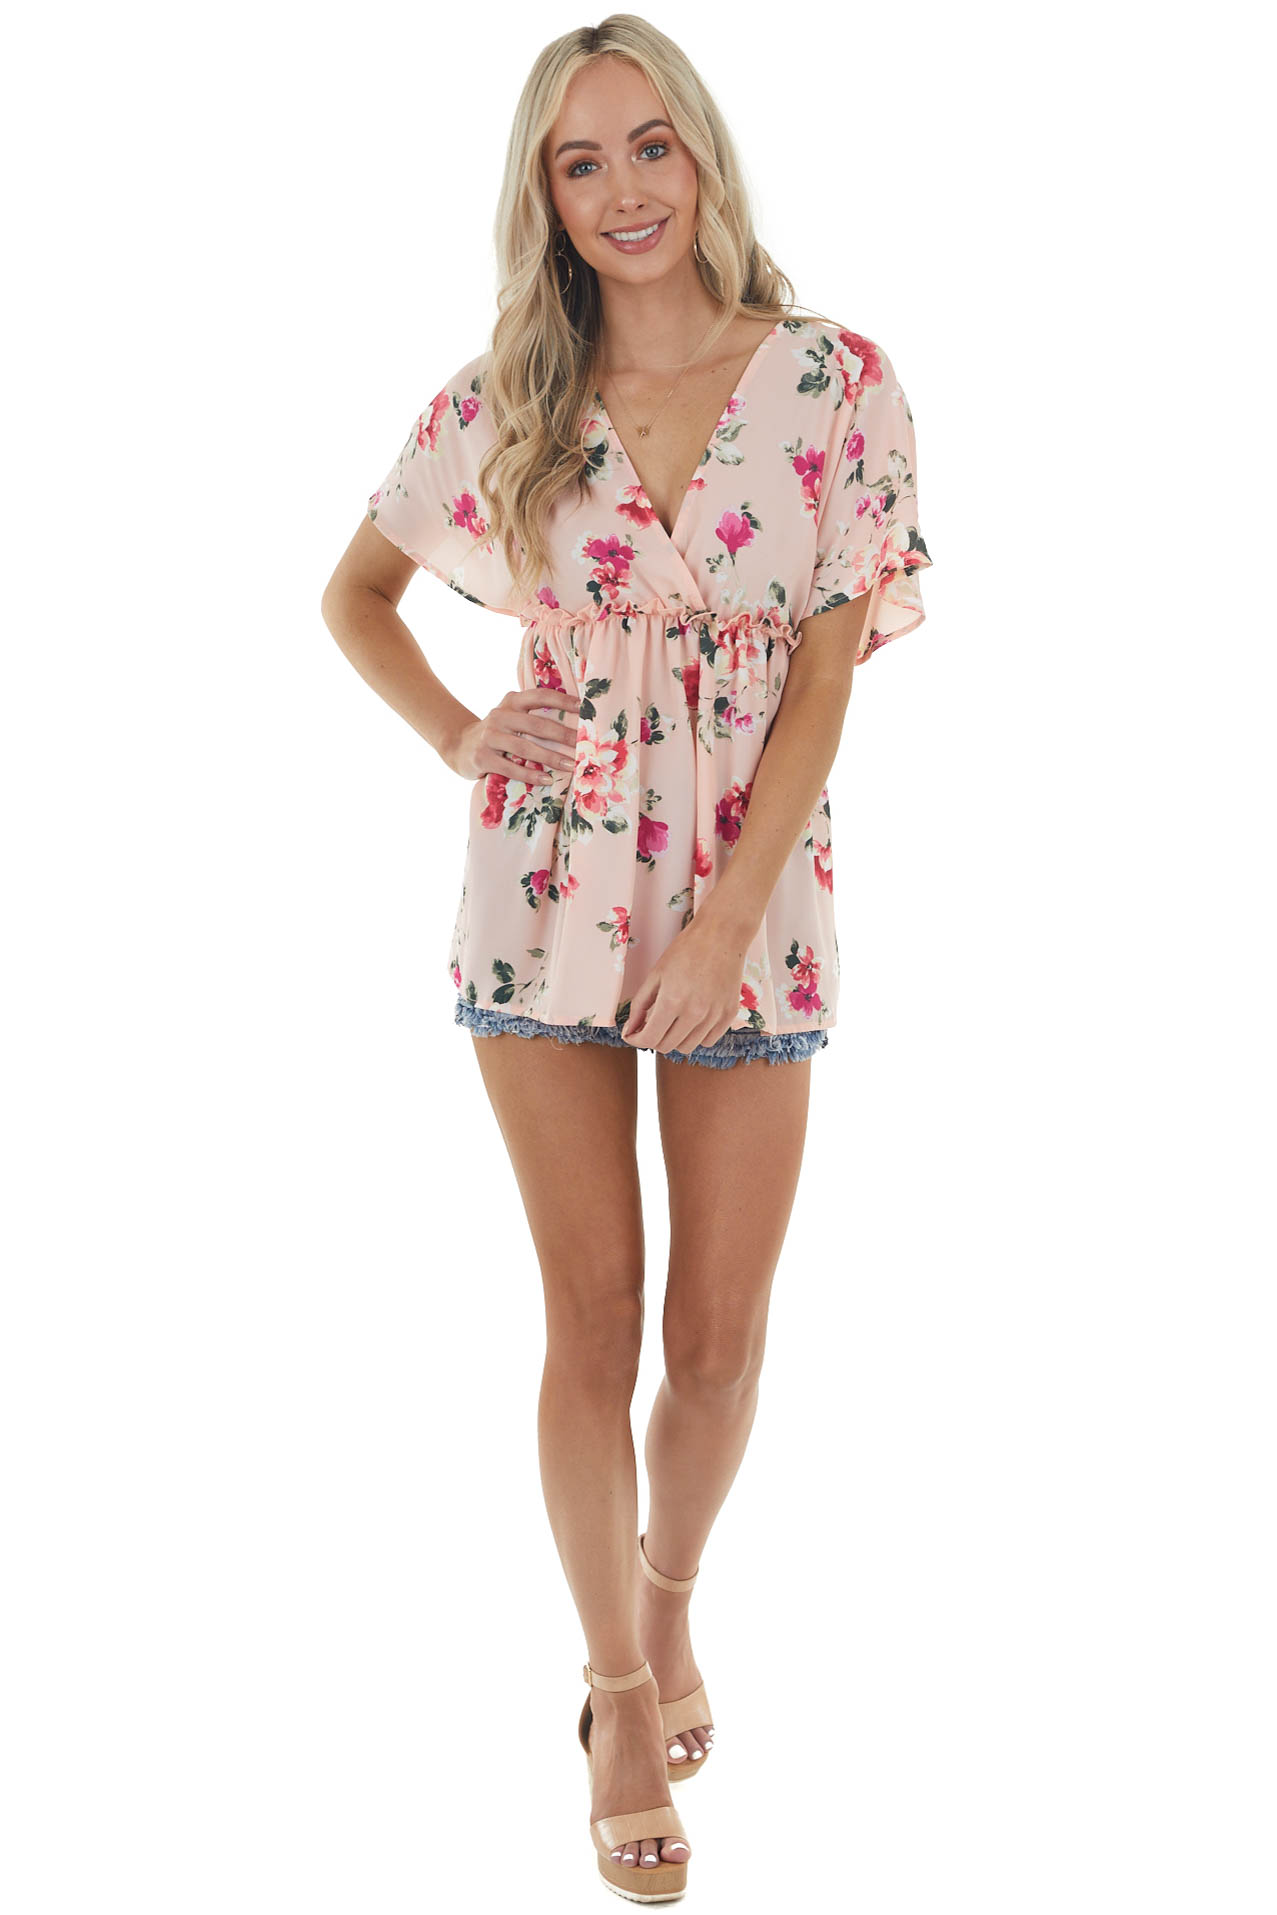 Baby Pink Floral Print Surplice Baby Doll Top with Frill